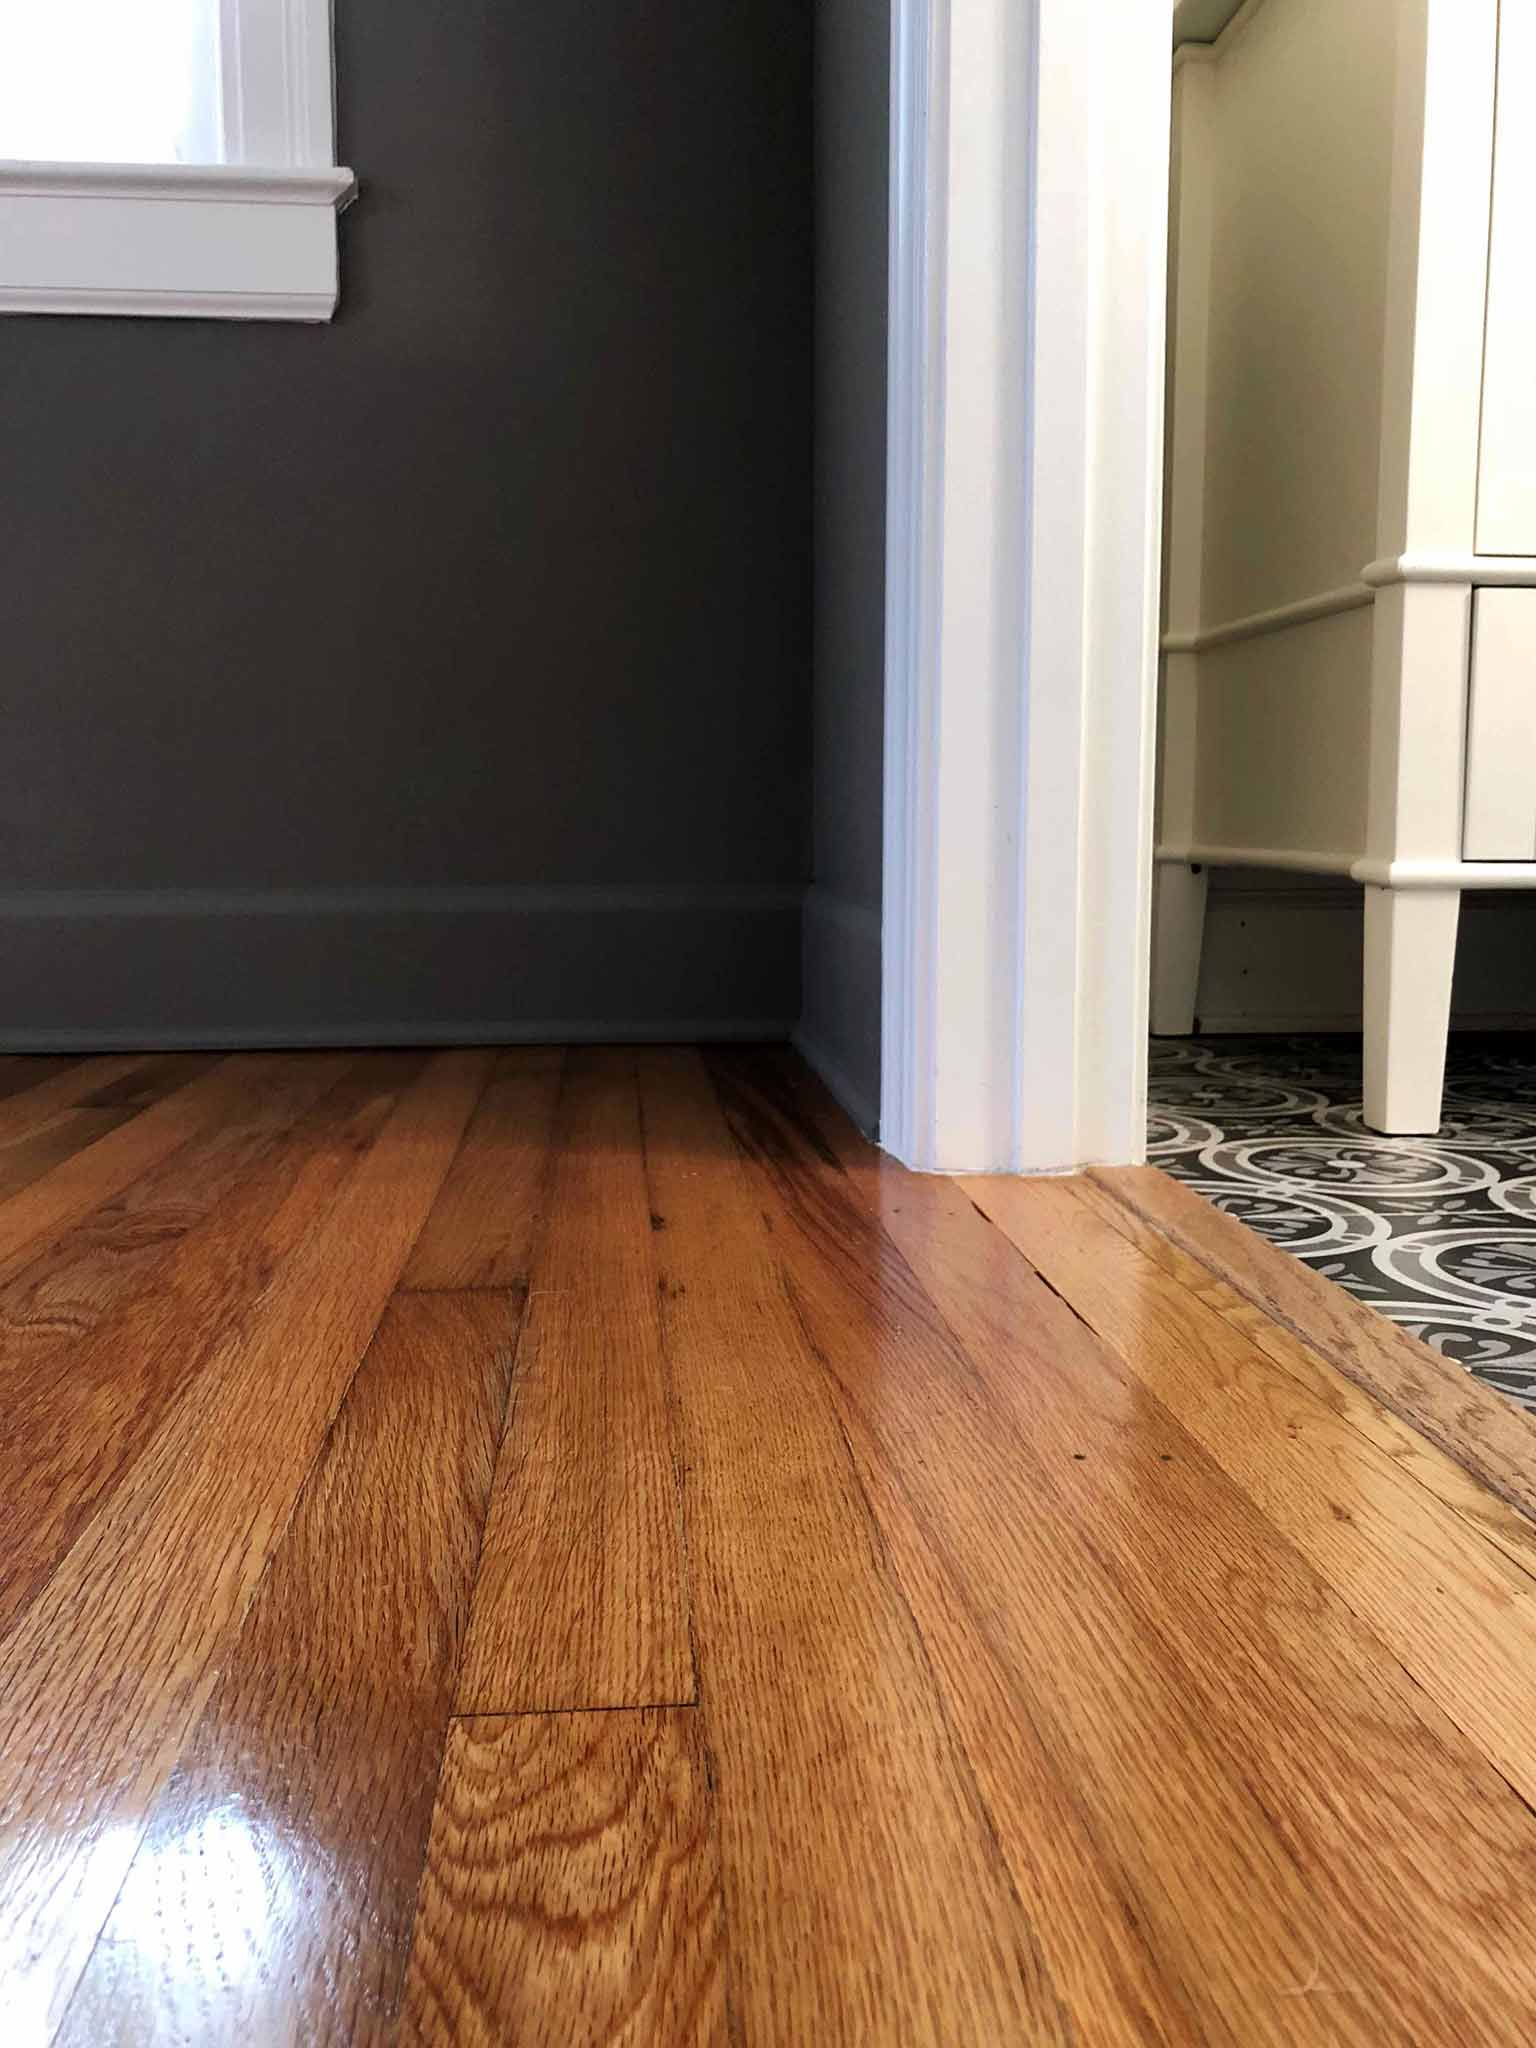 Master Bedroom Progress Painting Baseboards - The One Room Challenge - That Homebird Life Blog